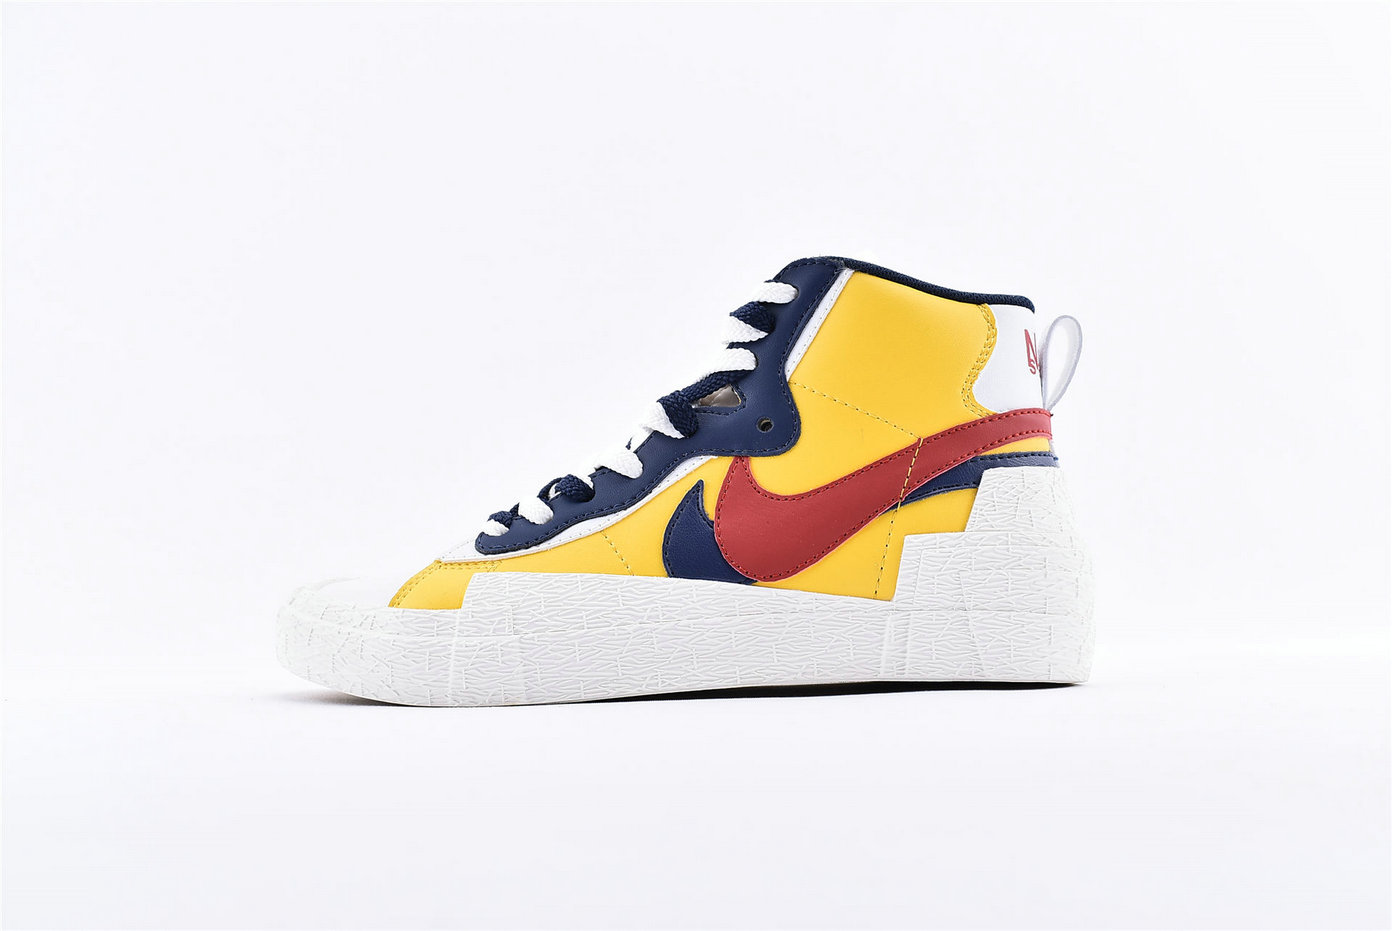 Where To Buy Sacai x Nike Blazer Mid Yellow Blue BV0072-700